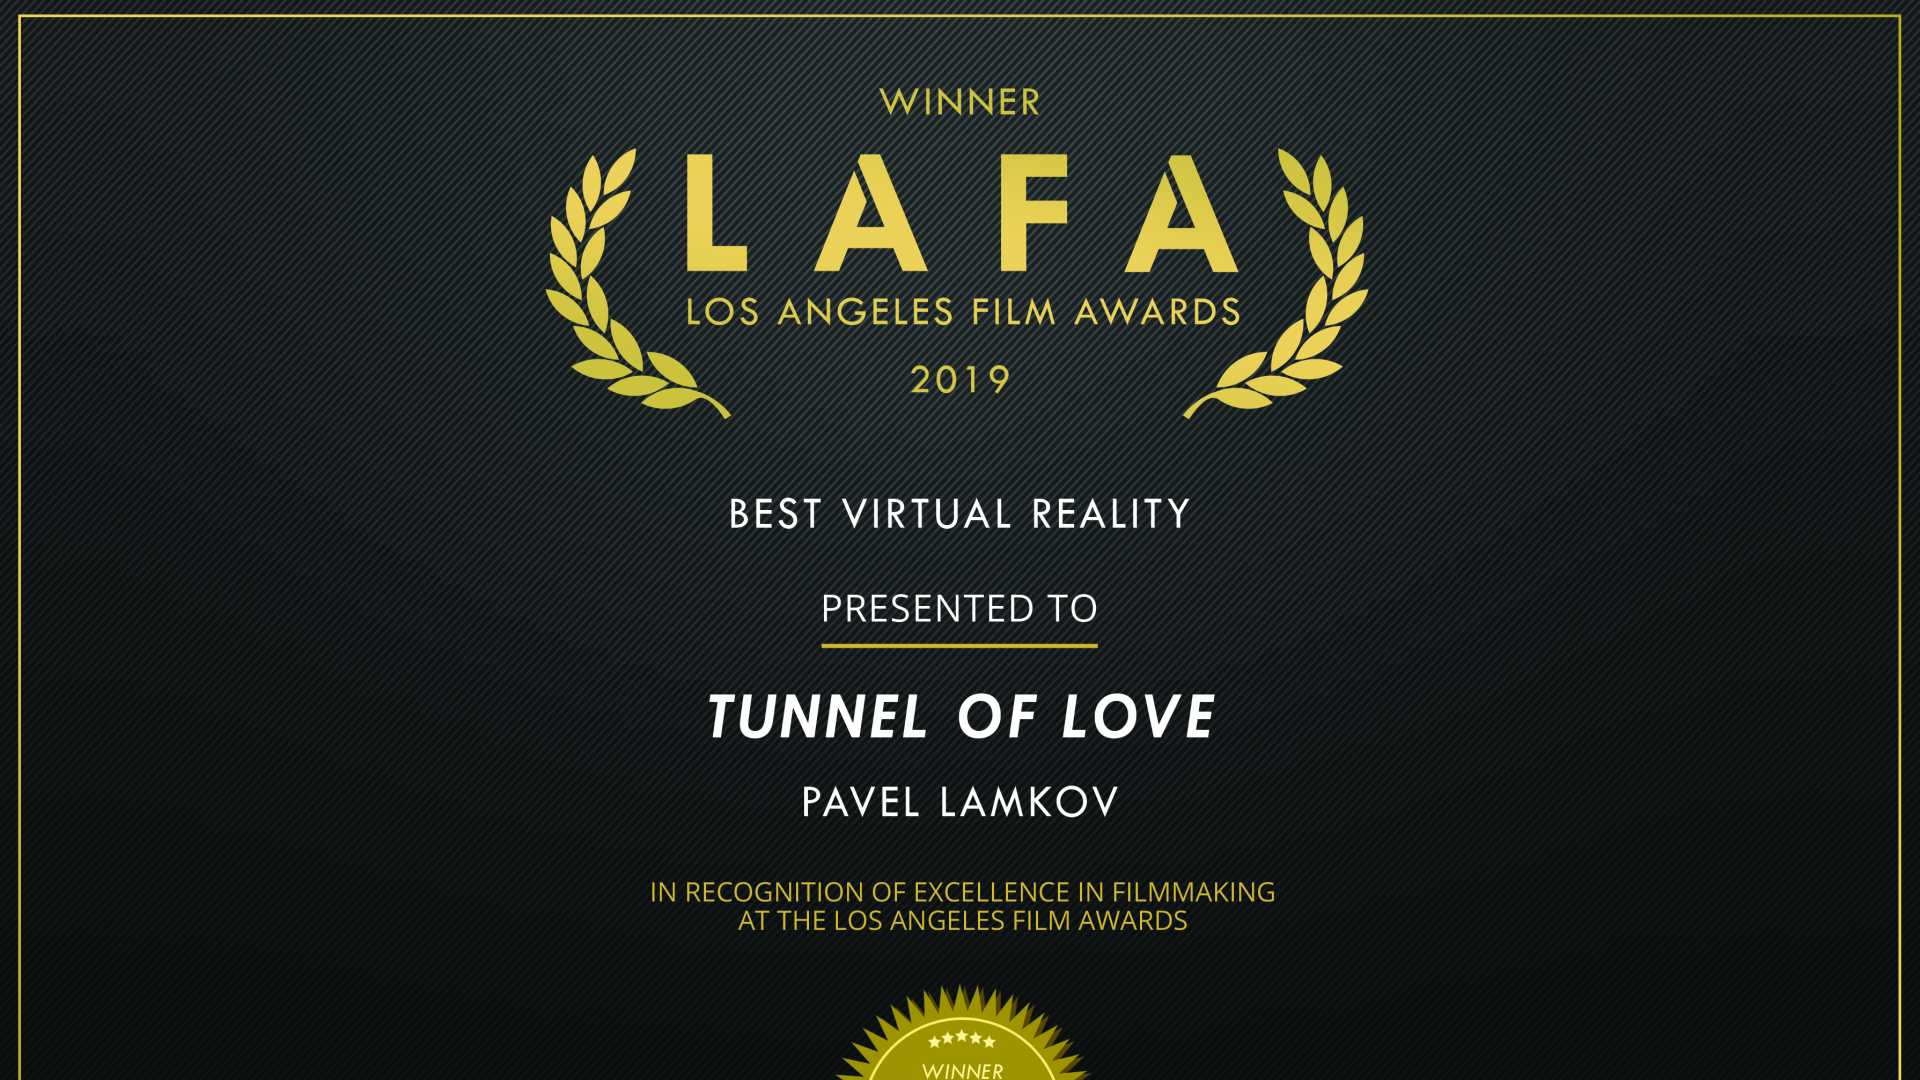 Pavel Lamkov, Los Angeles Film Award